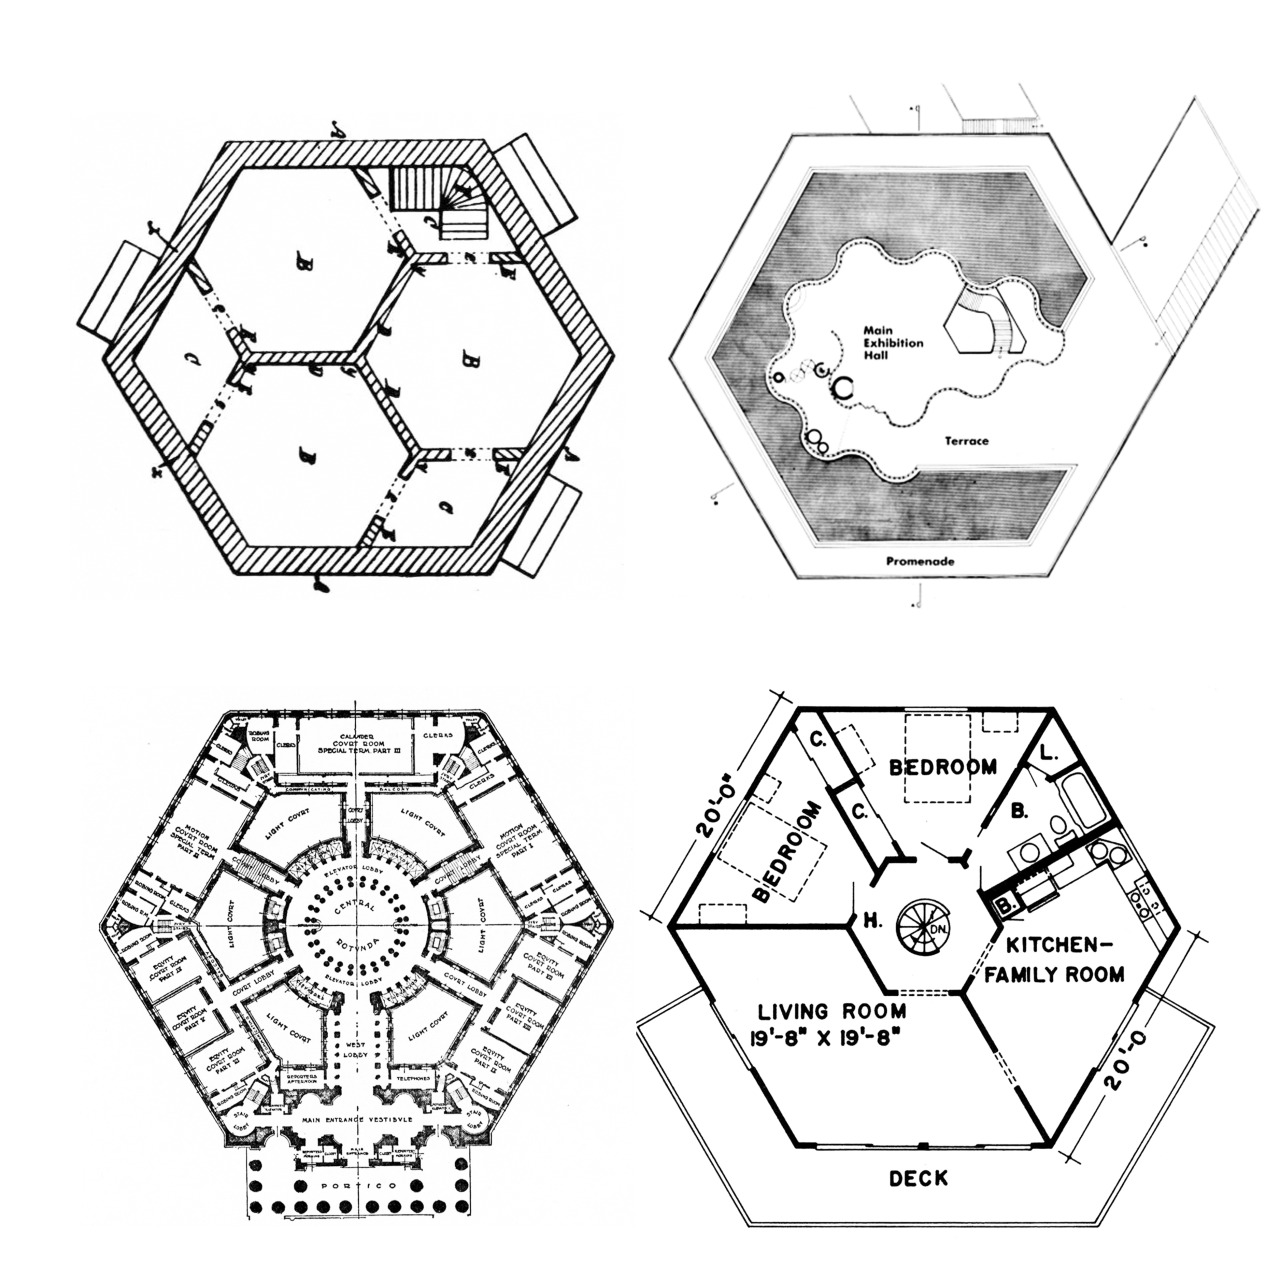 1280x1280 Hexagon Plans From Left To Right Harriet Irwin, Hexagonal